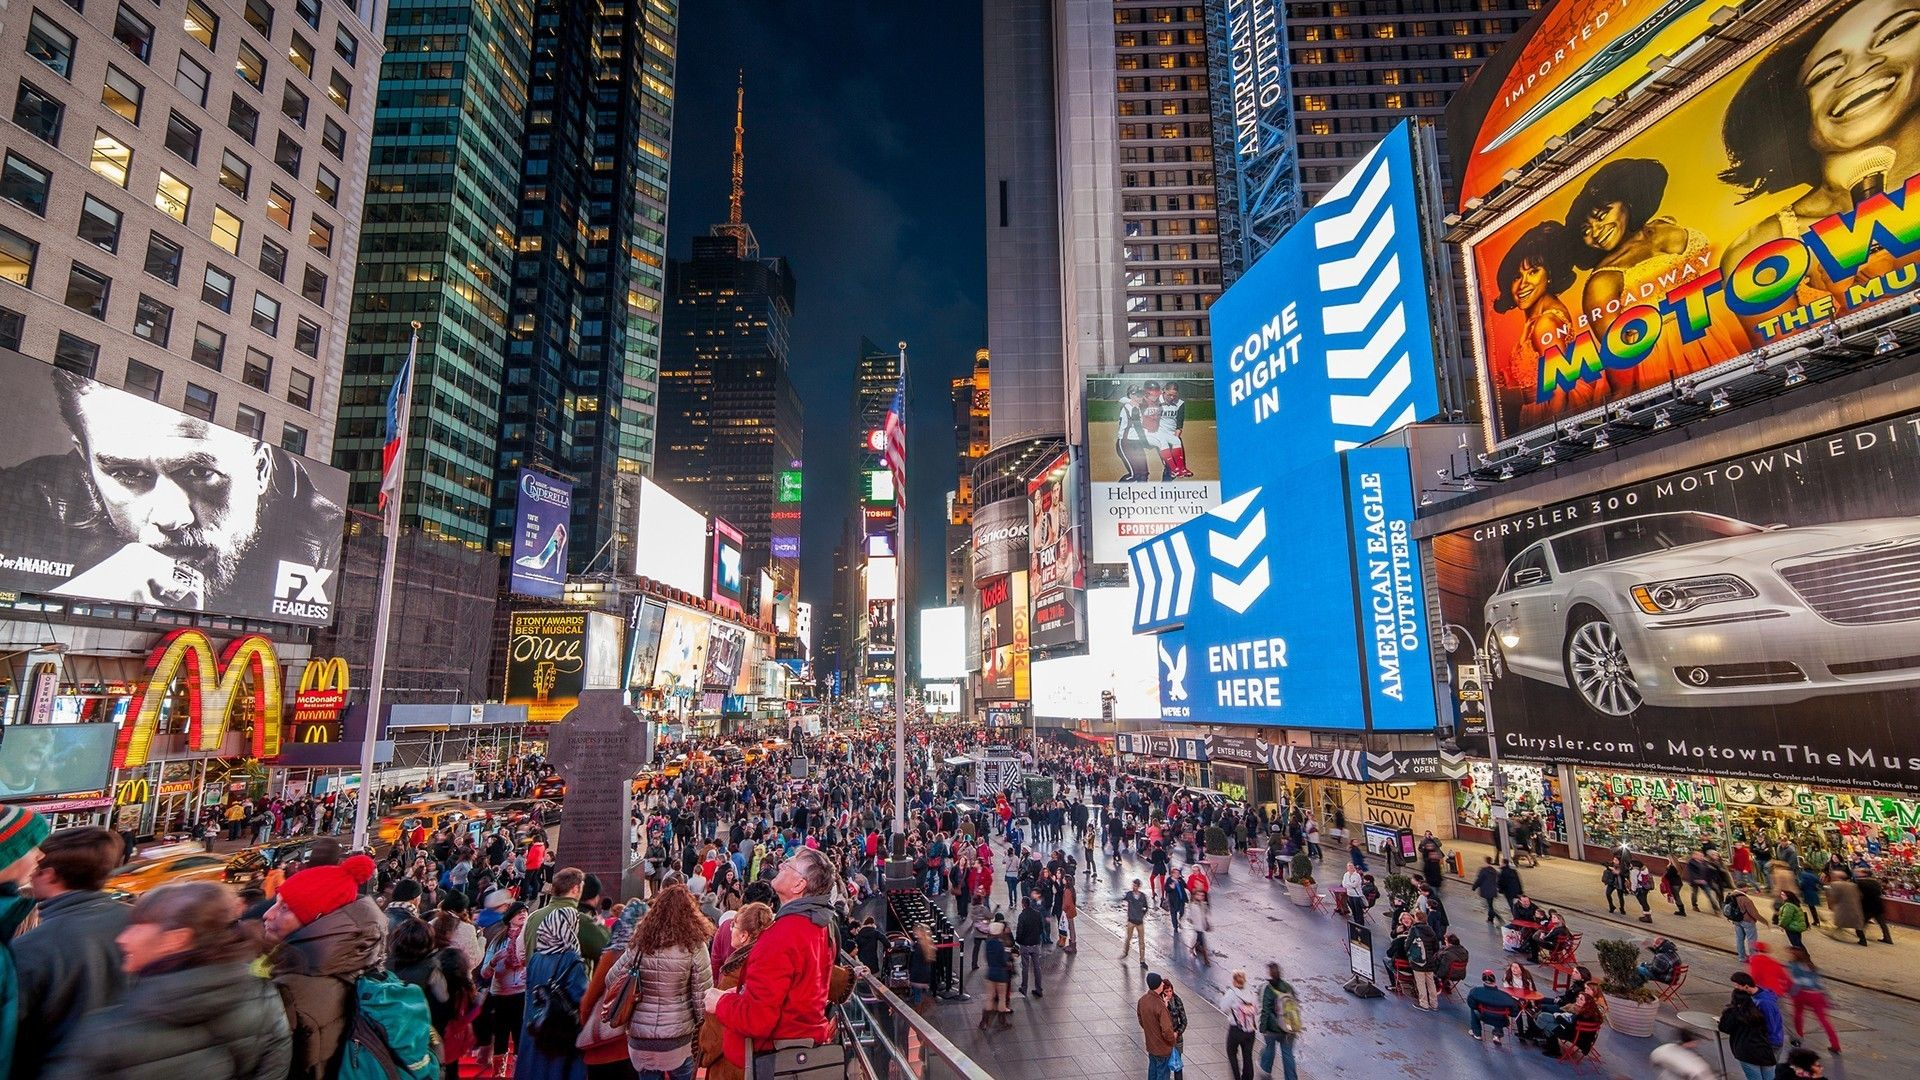 High Definition Time Square Wallpaper Widescreen Images